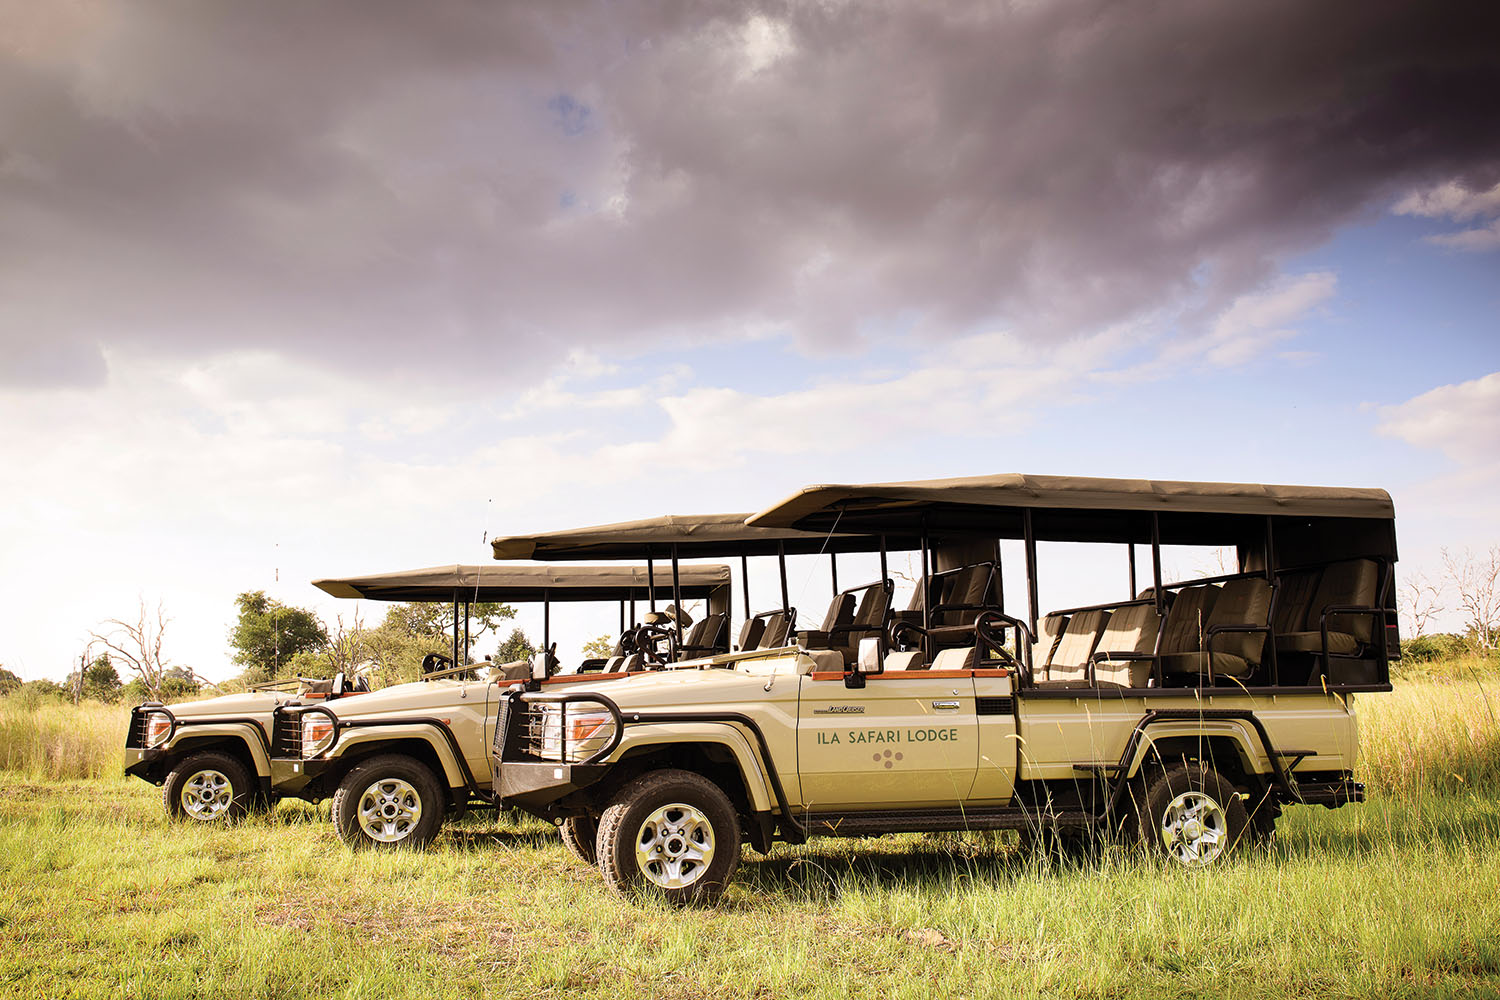 ila safari lodge zambia-in-style-safari-packages-lodges-kafue-national-park-guides-game-drives